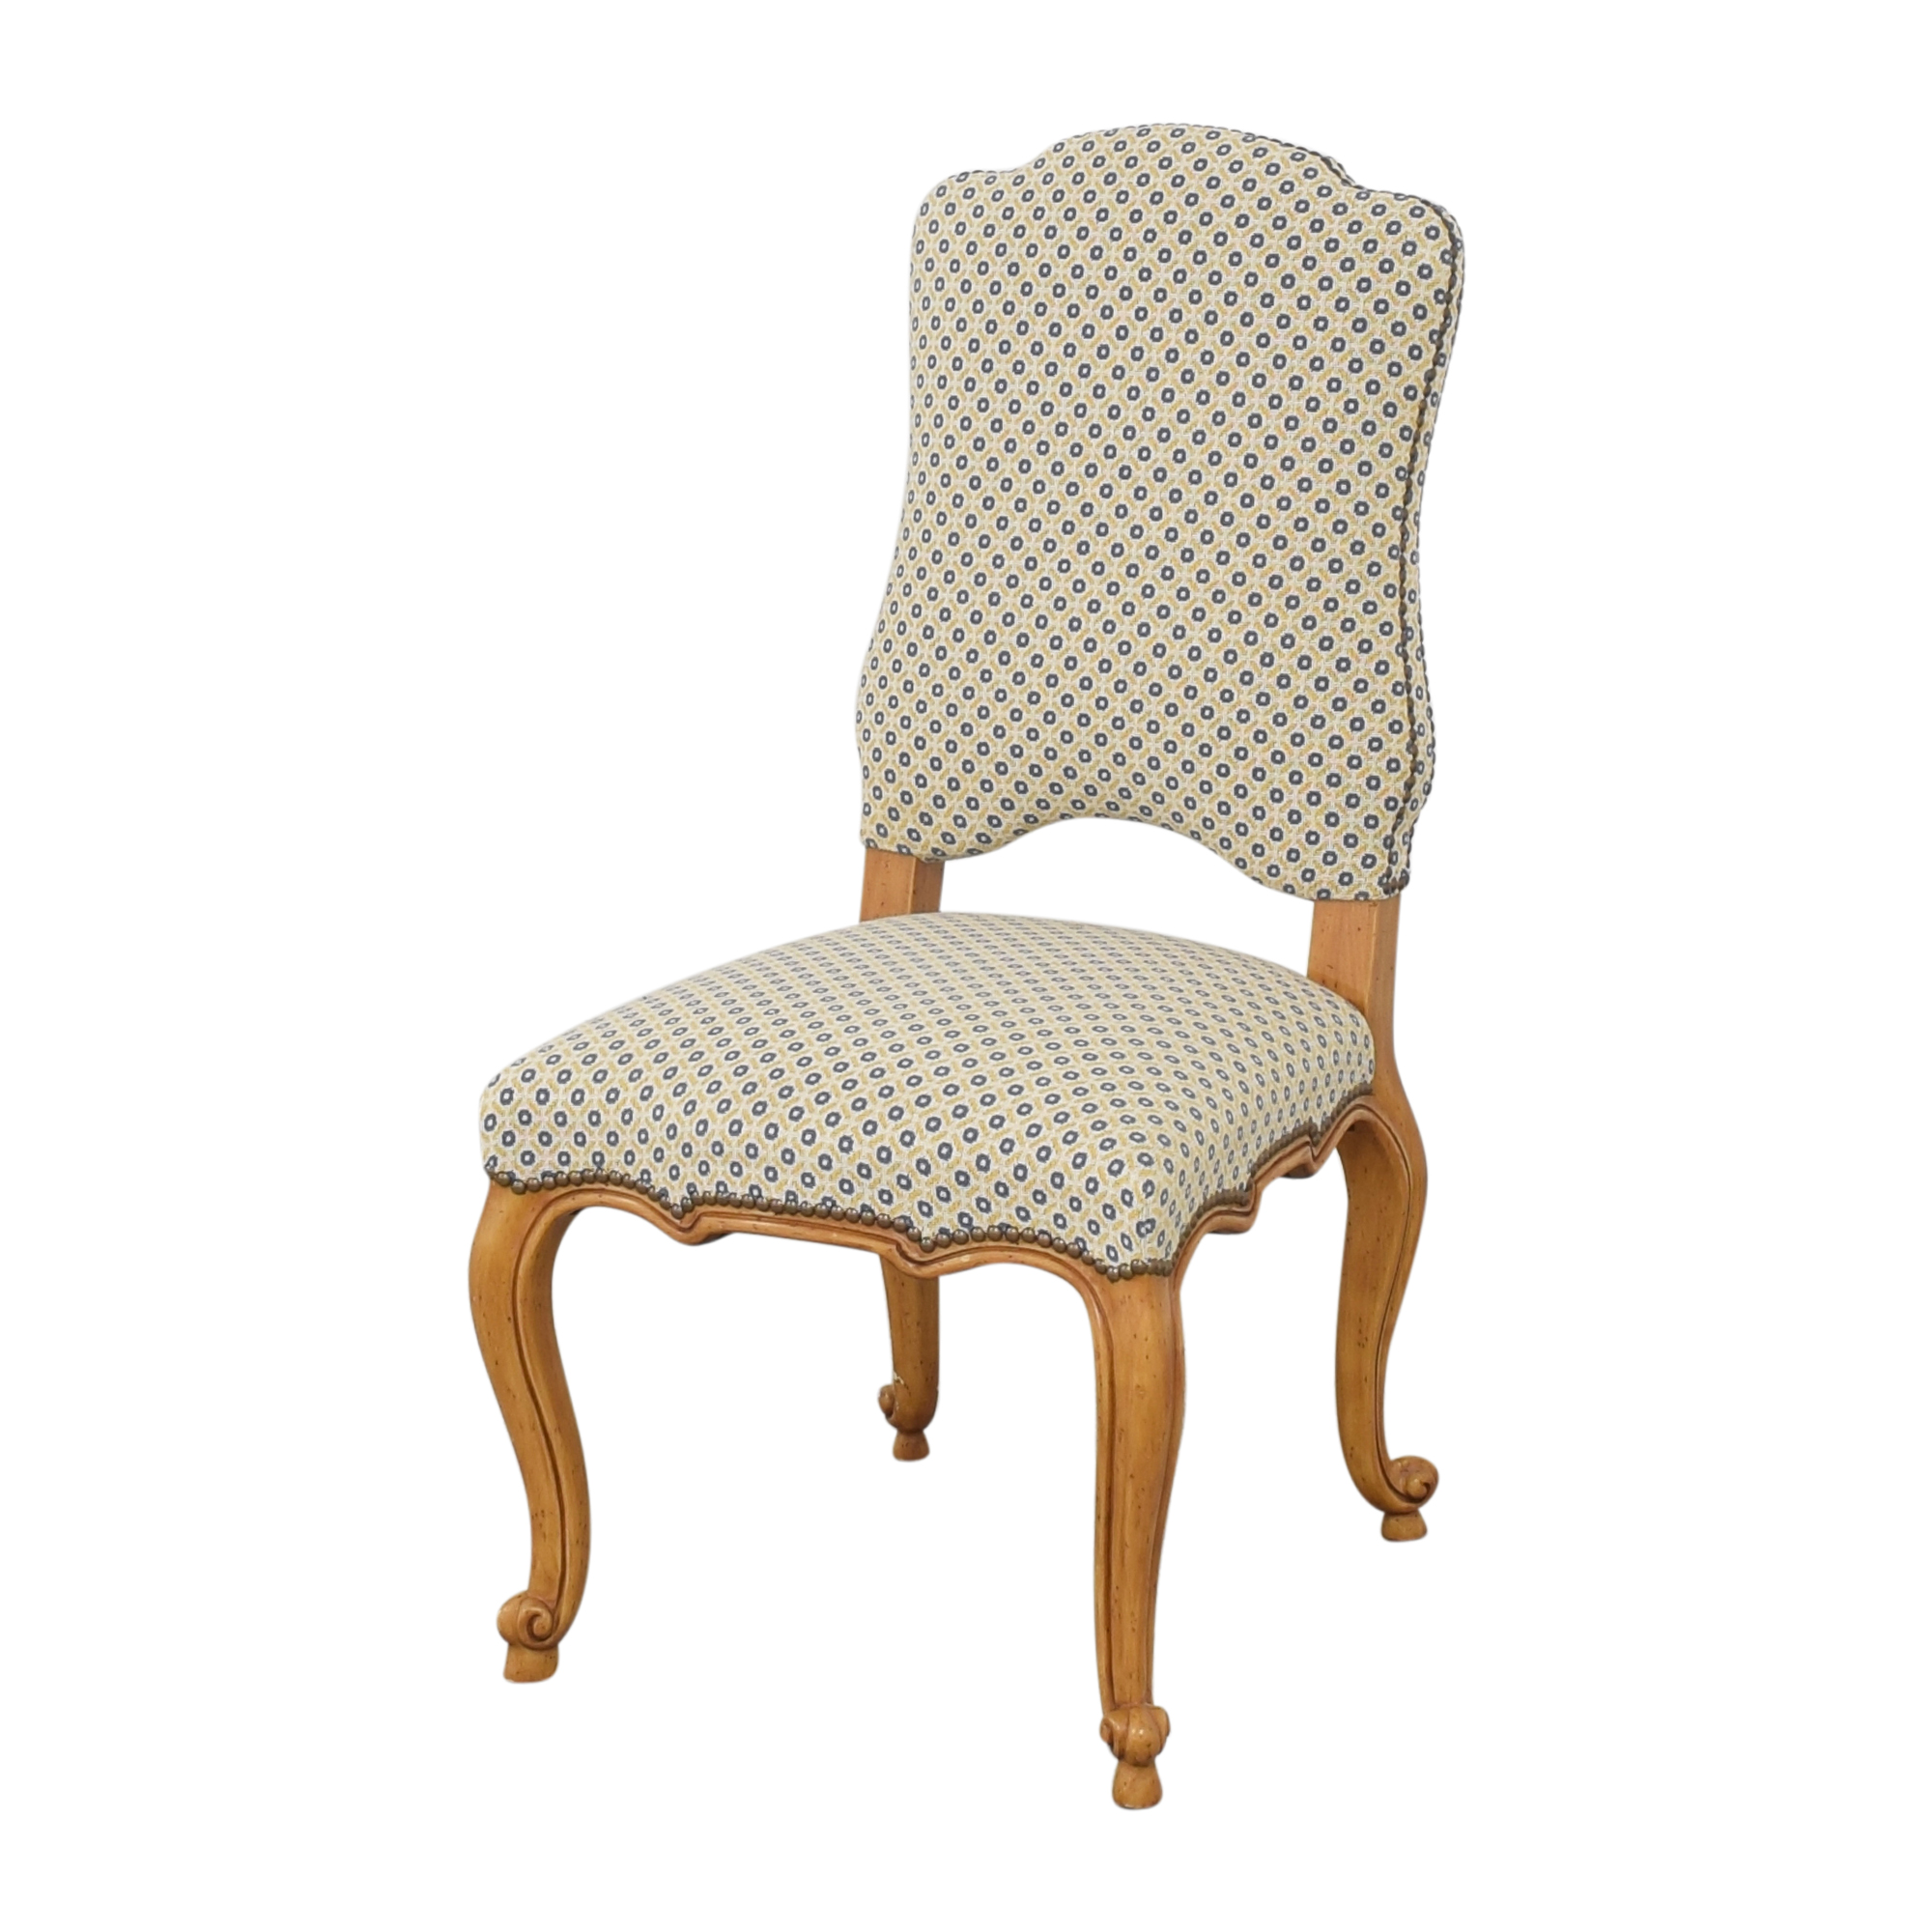 shop Minton-Spidell Regence Dining Side Chairs Minton-Spidell Dining Chairs